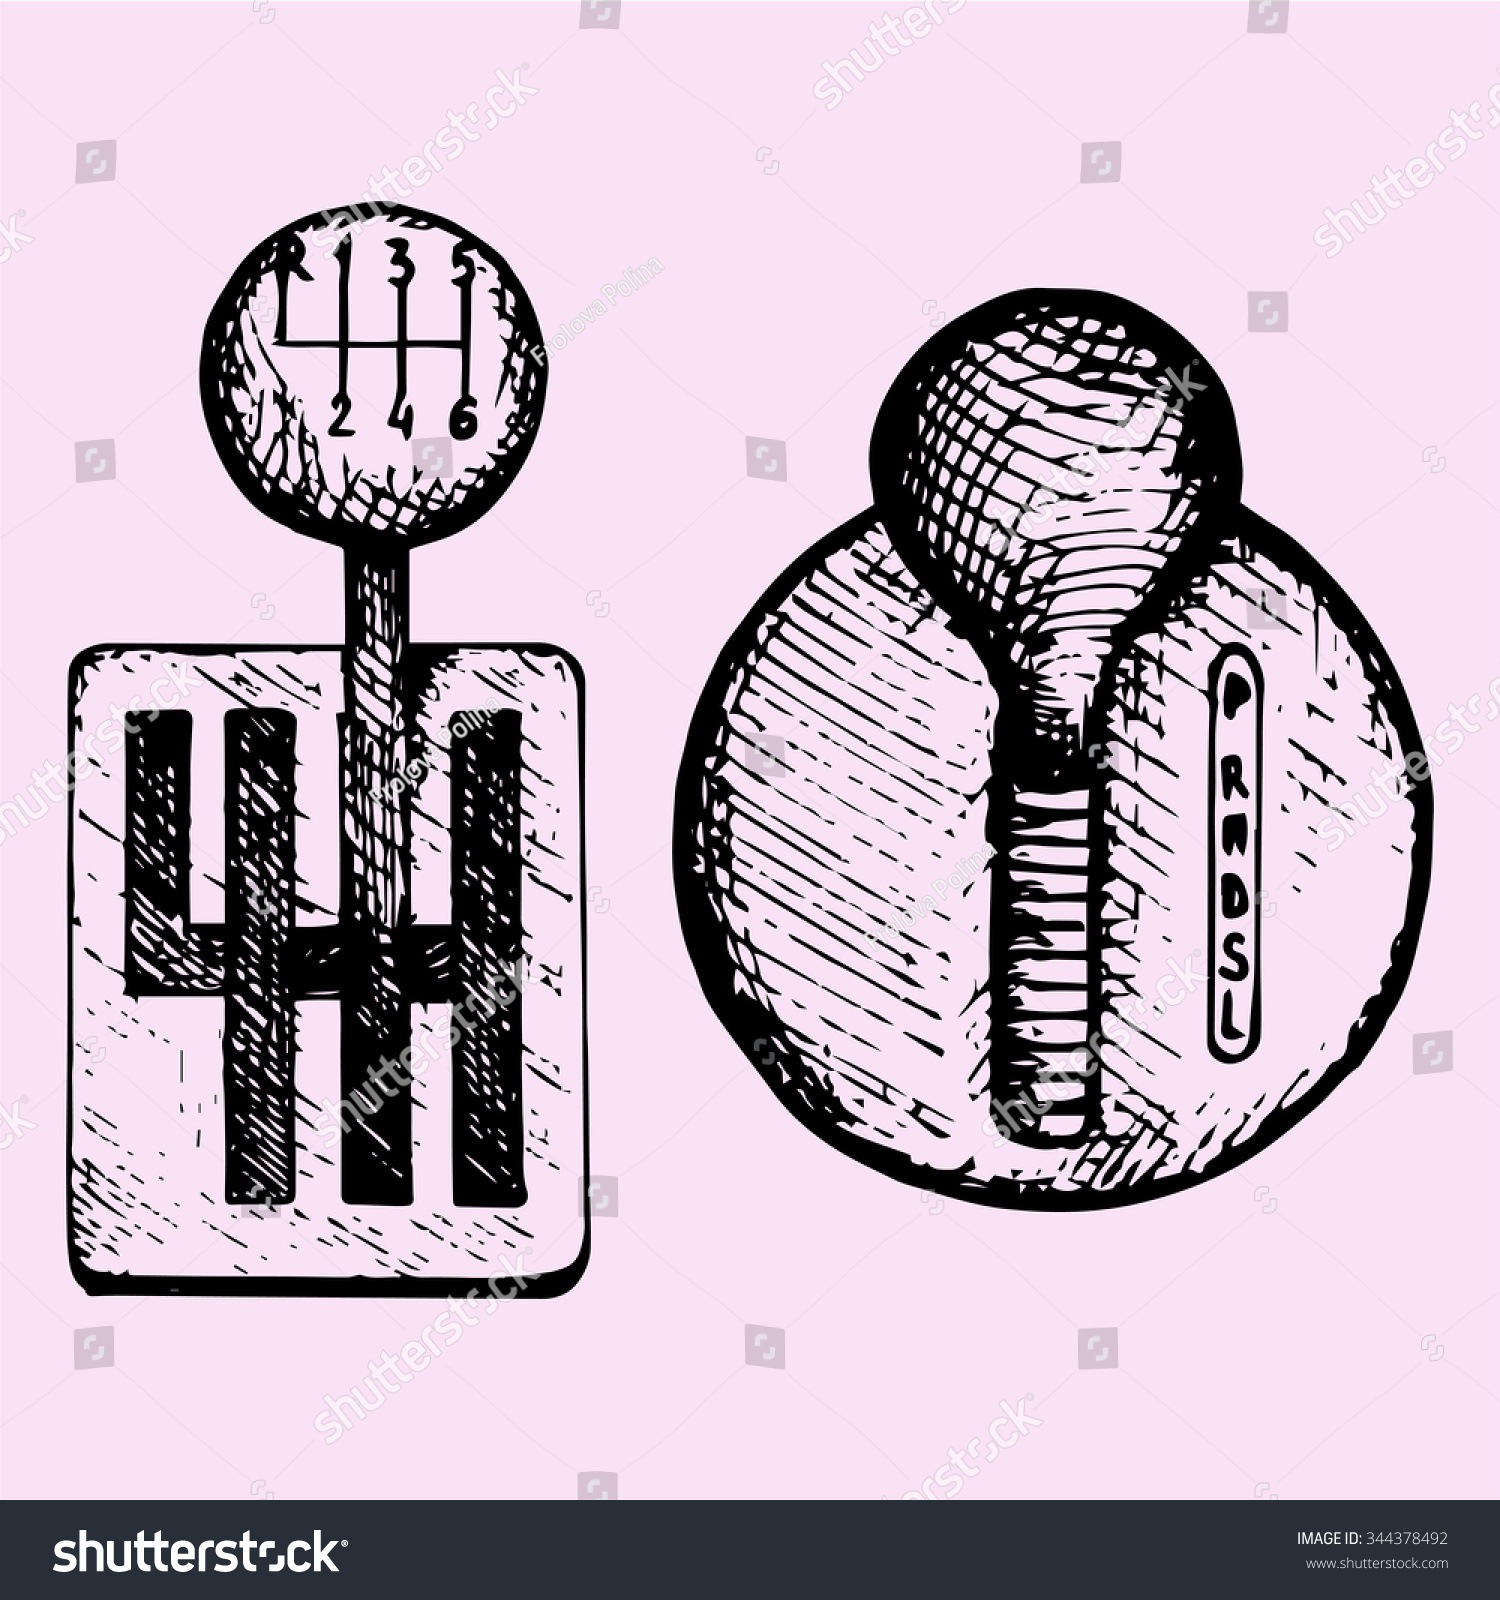 hight resolution of car gear stick doodle style sketch illustration hand drawn vector